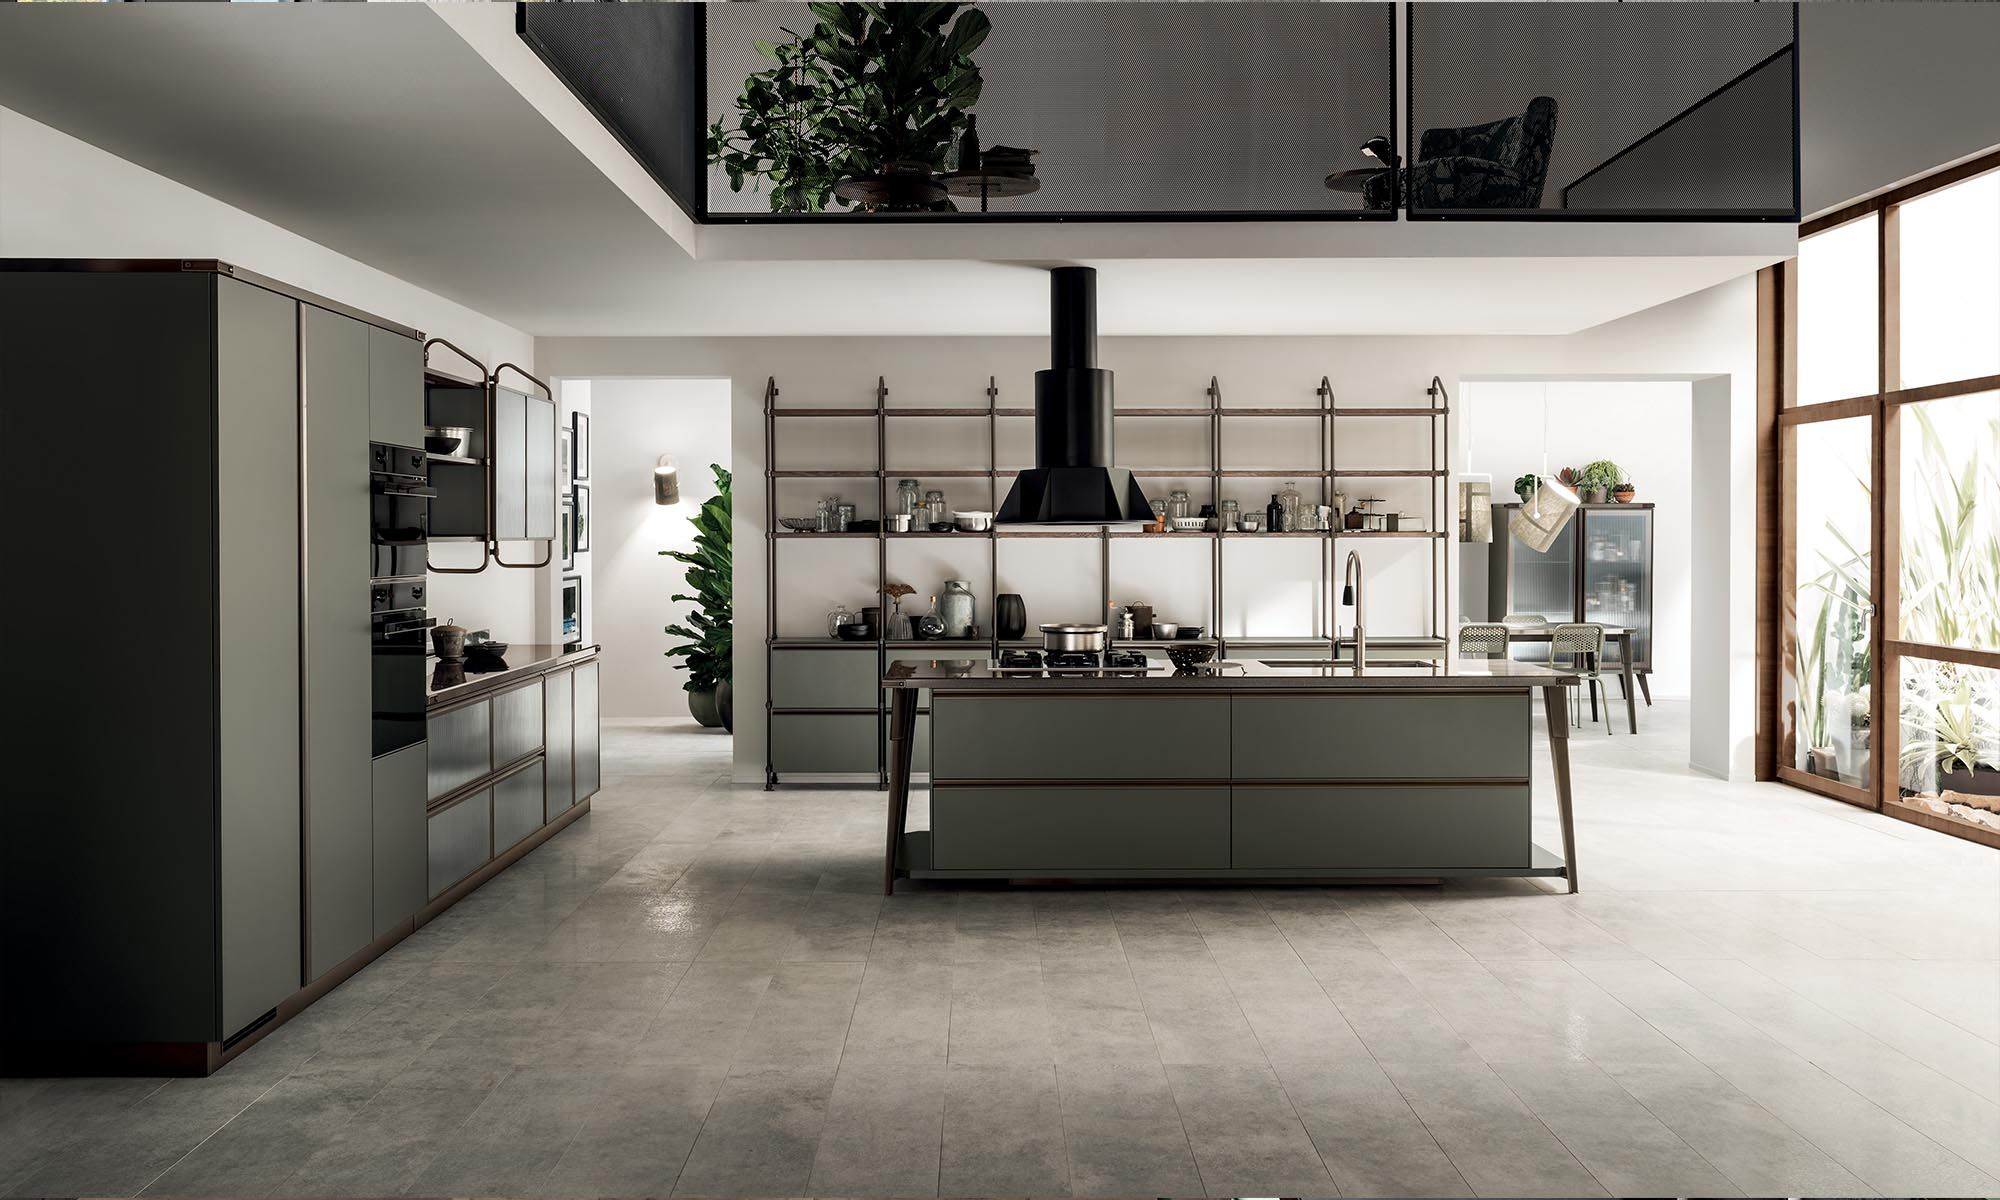 scavolini_headerimage.jpg